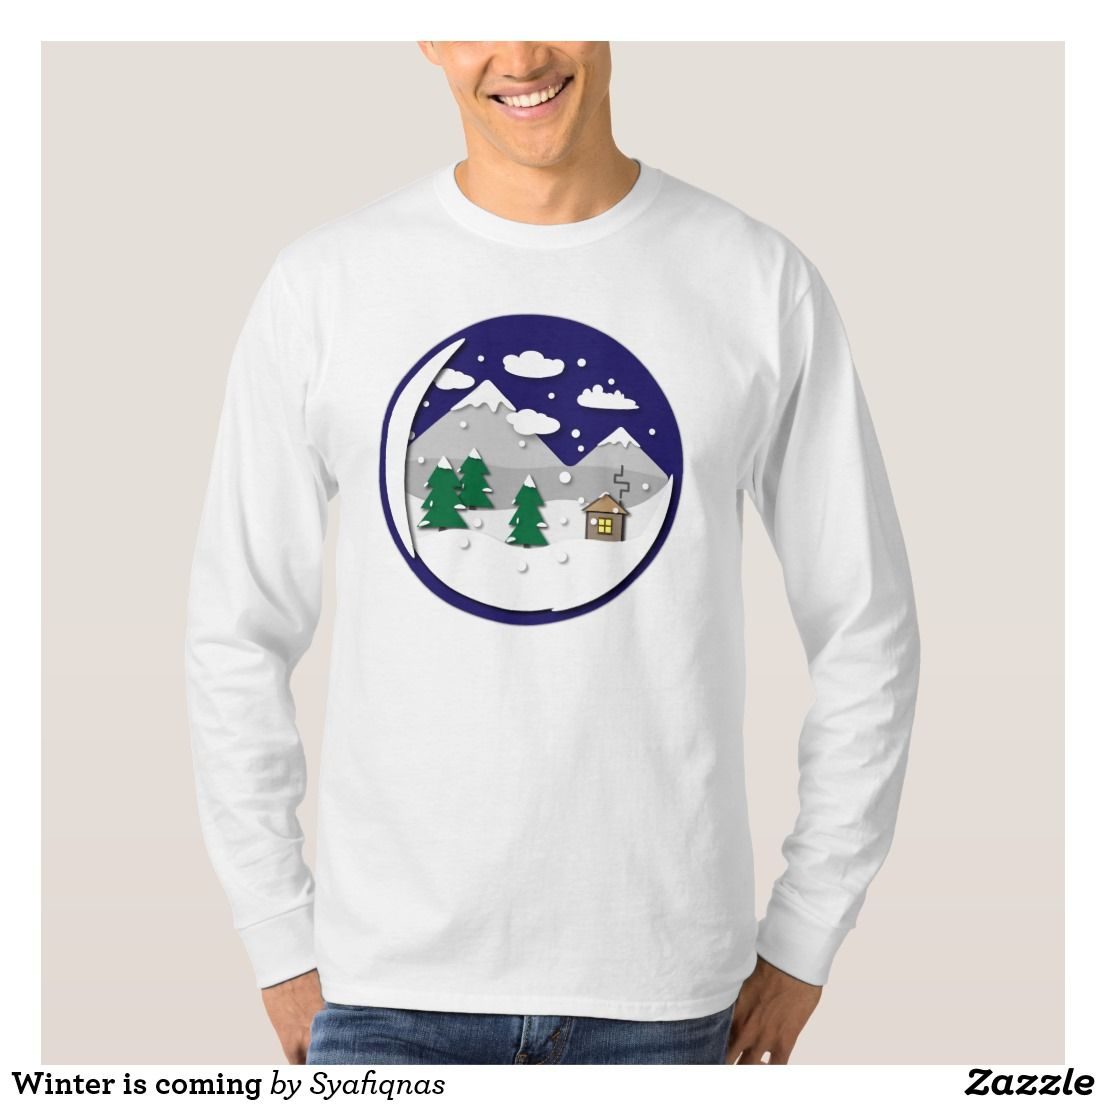 Winter Is Coming Travel Tshirt Apparel Design Sale